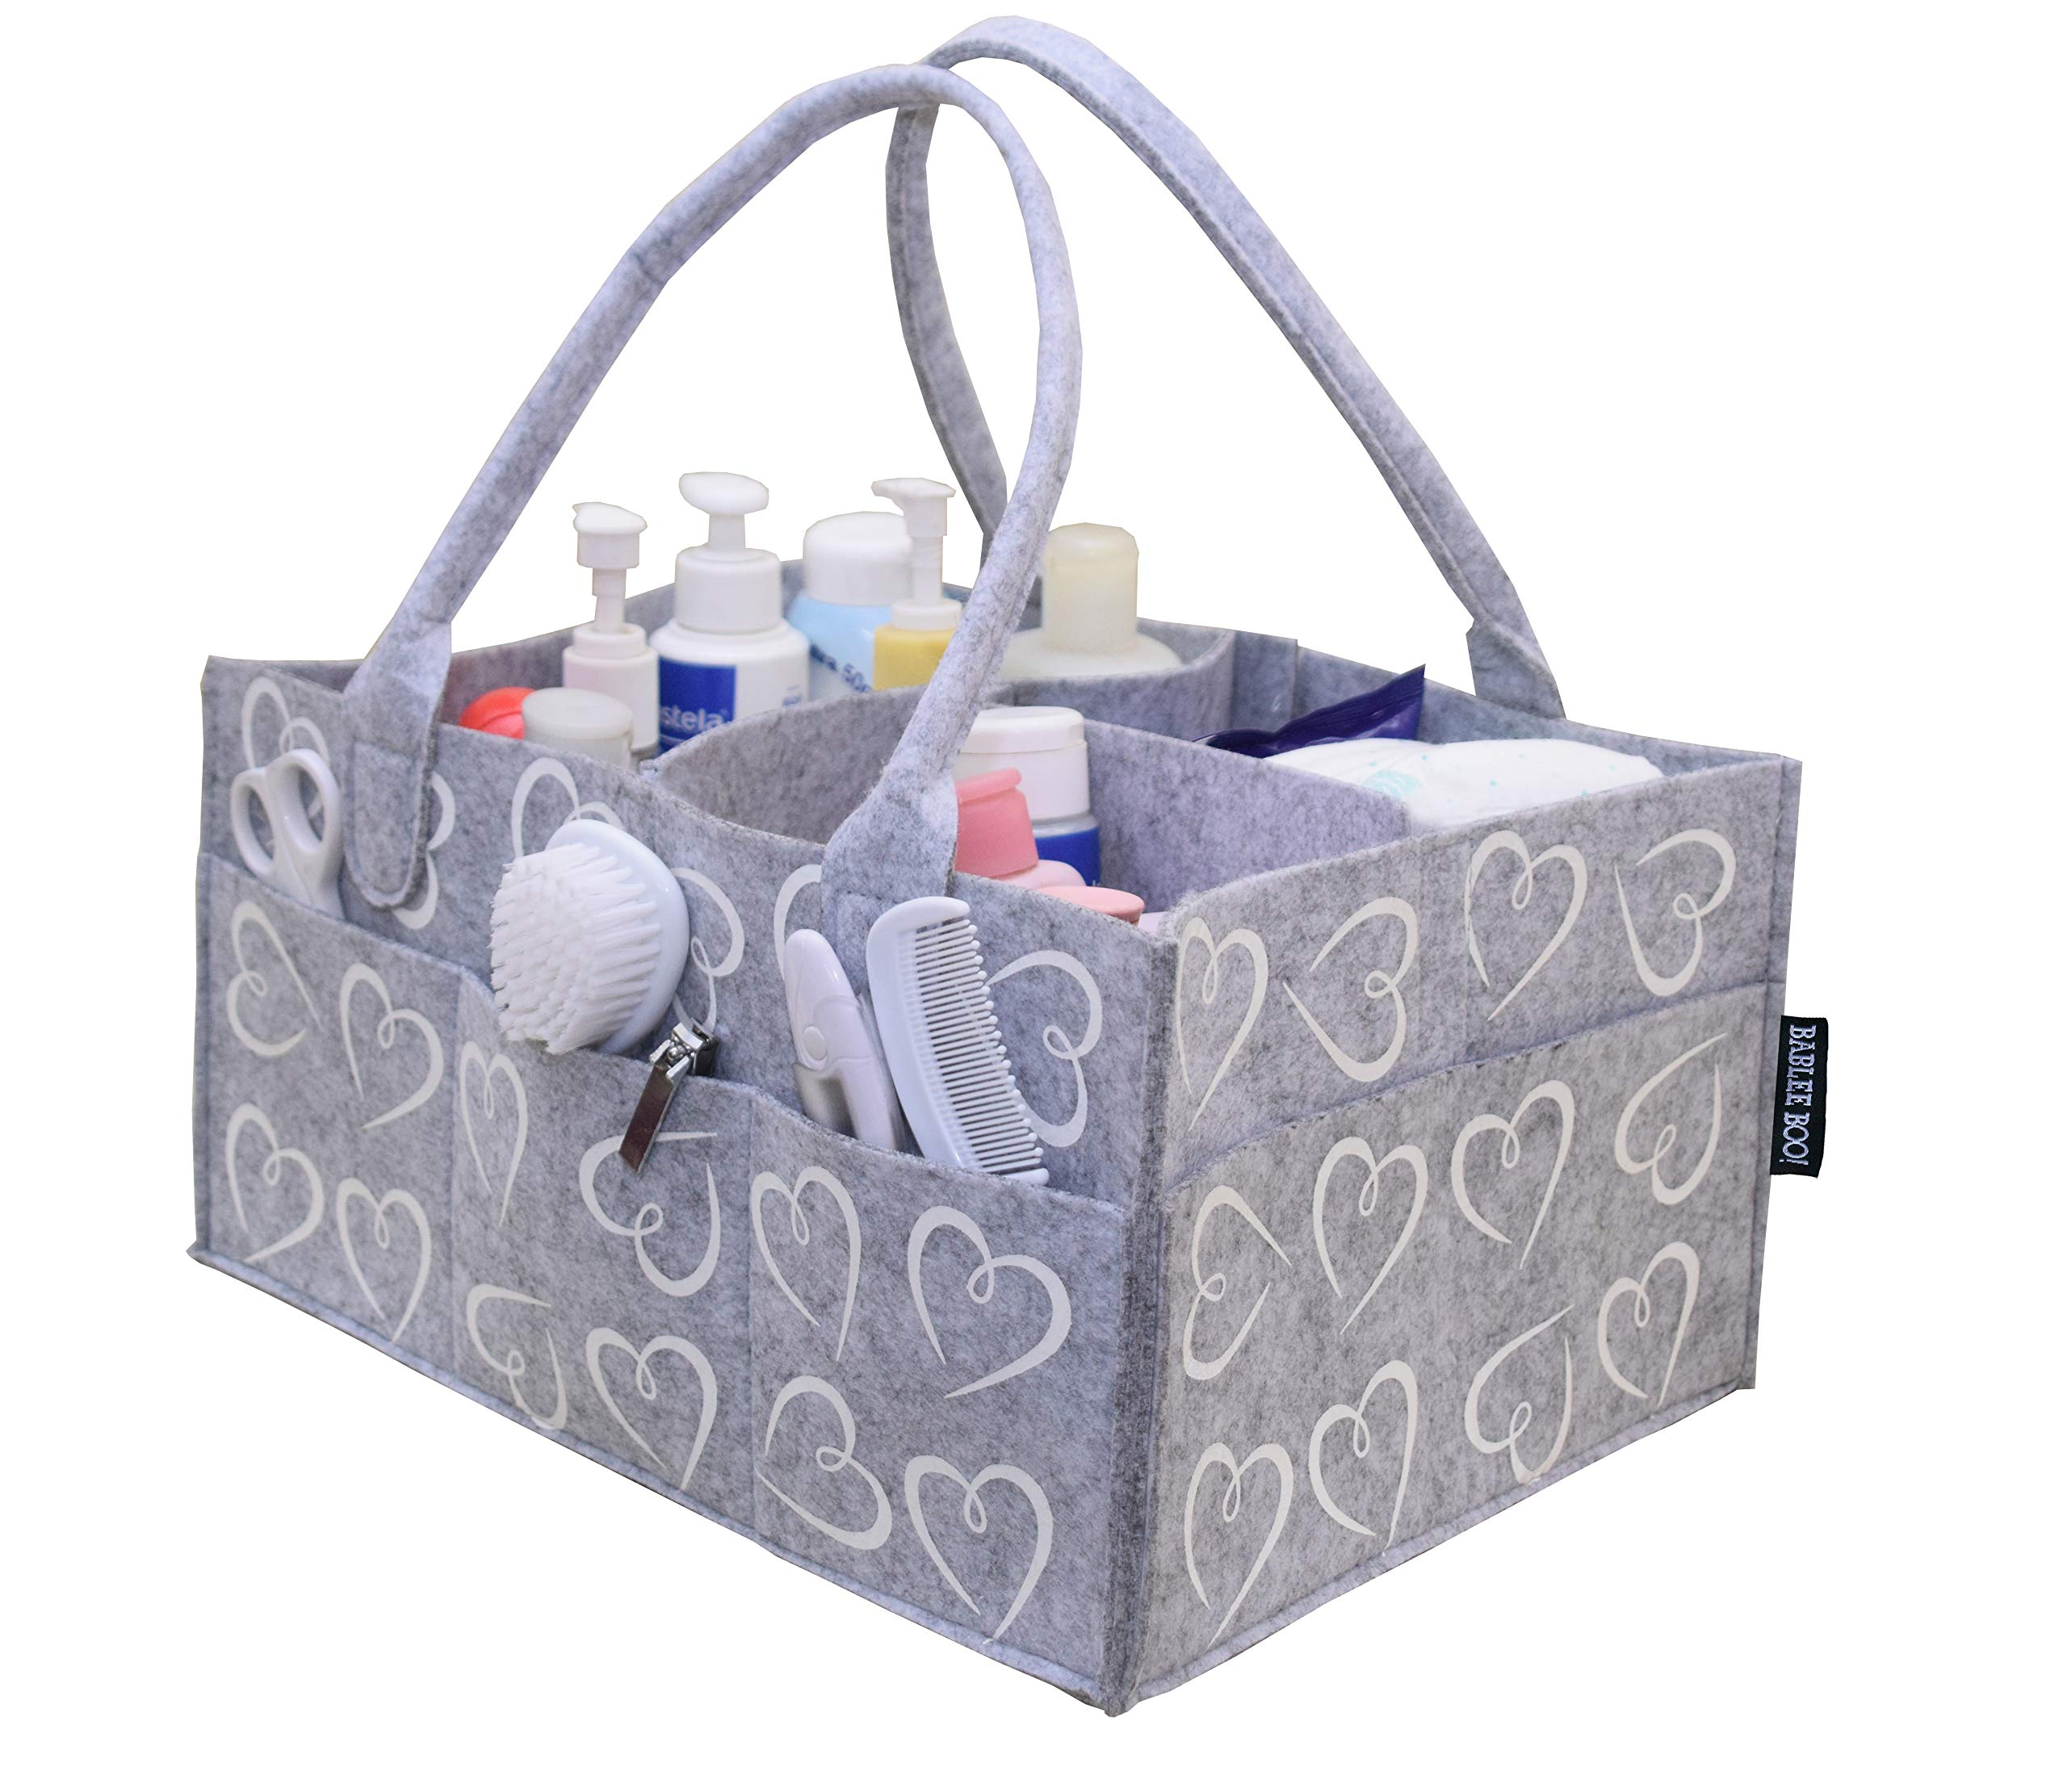 Diaper Caddy by Bablee Boo | Baby Gifts Basket | Registry for Baby Shower Must Have |